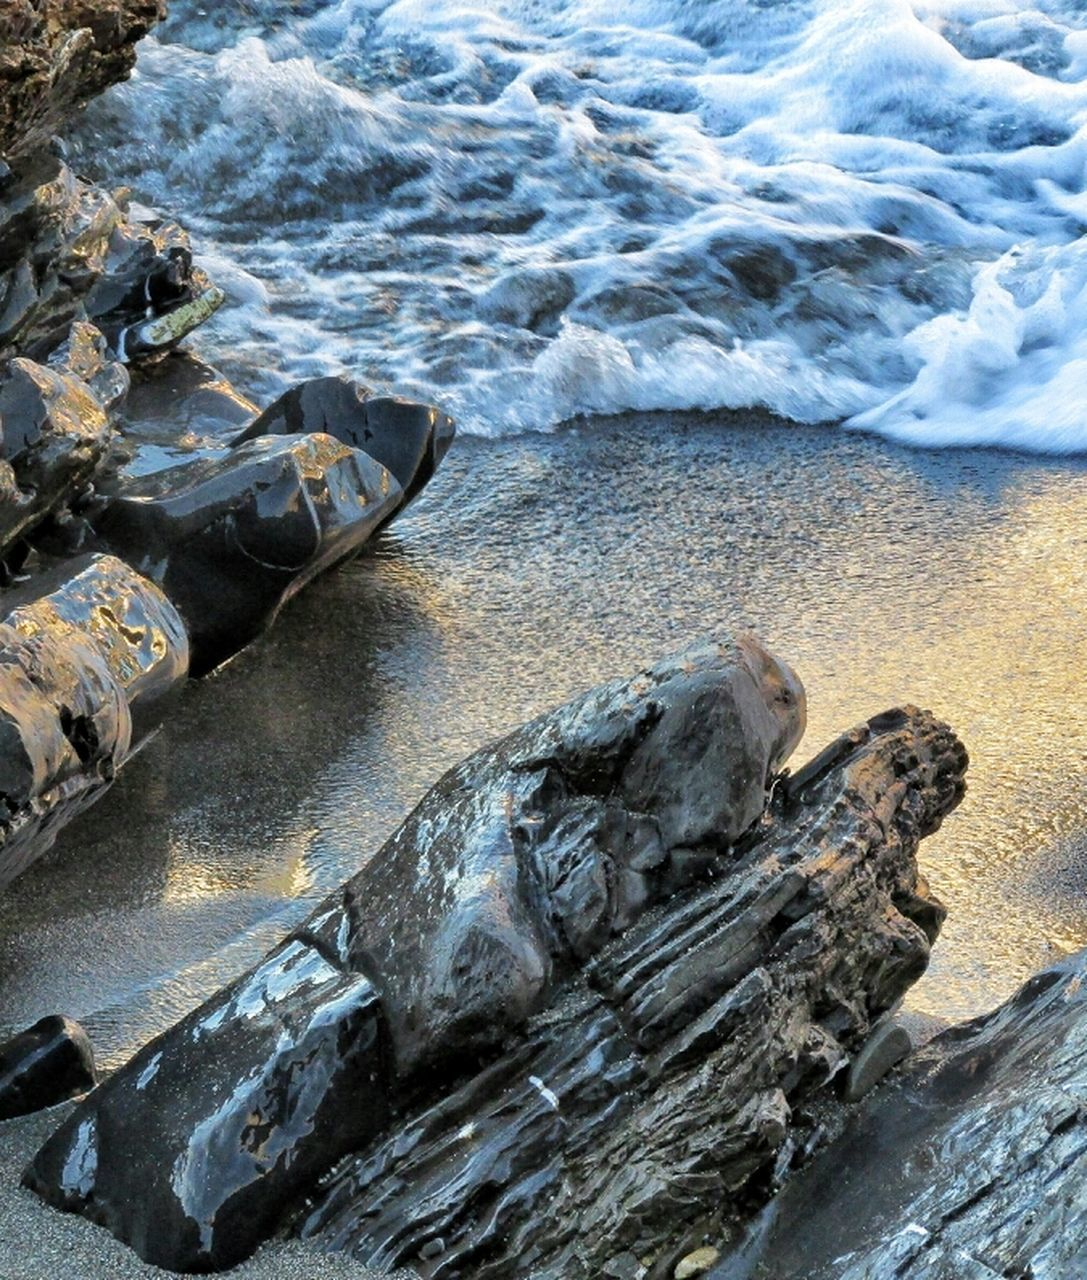 water, sand, beach, rock, wet, rippled, stone, sea, swimming, sea life, rock - object, nature, fish, wildlife, natural pattern, rough, physical geography, geology, power in nature, vacation